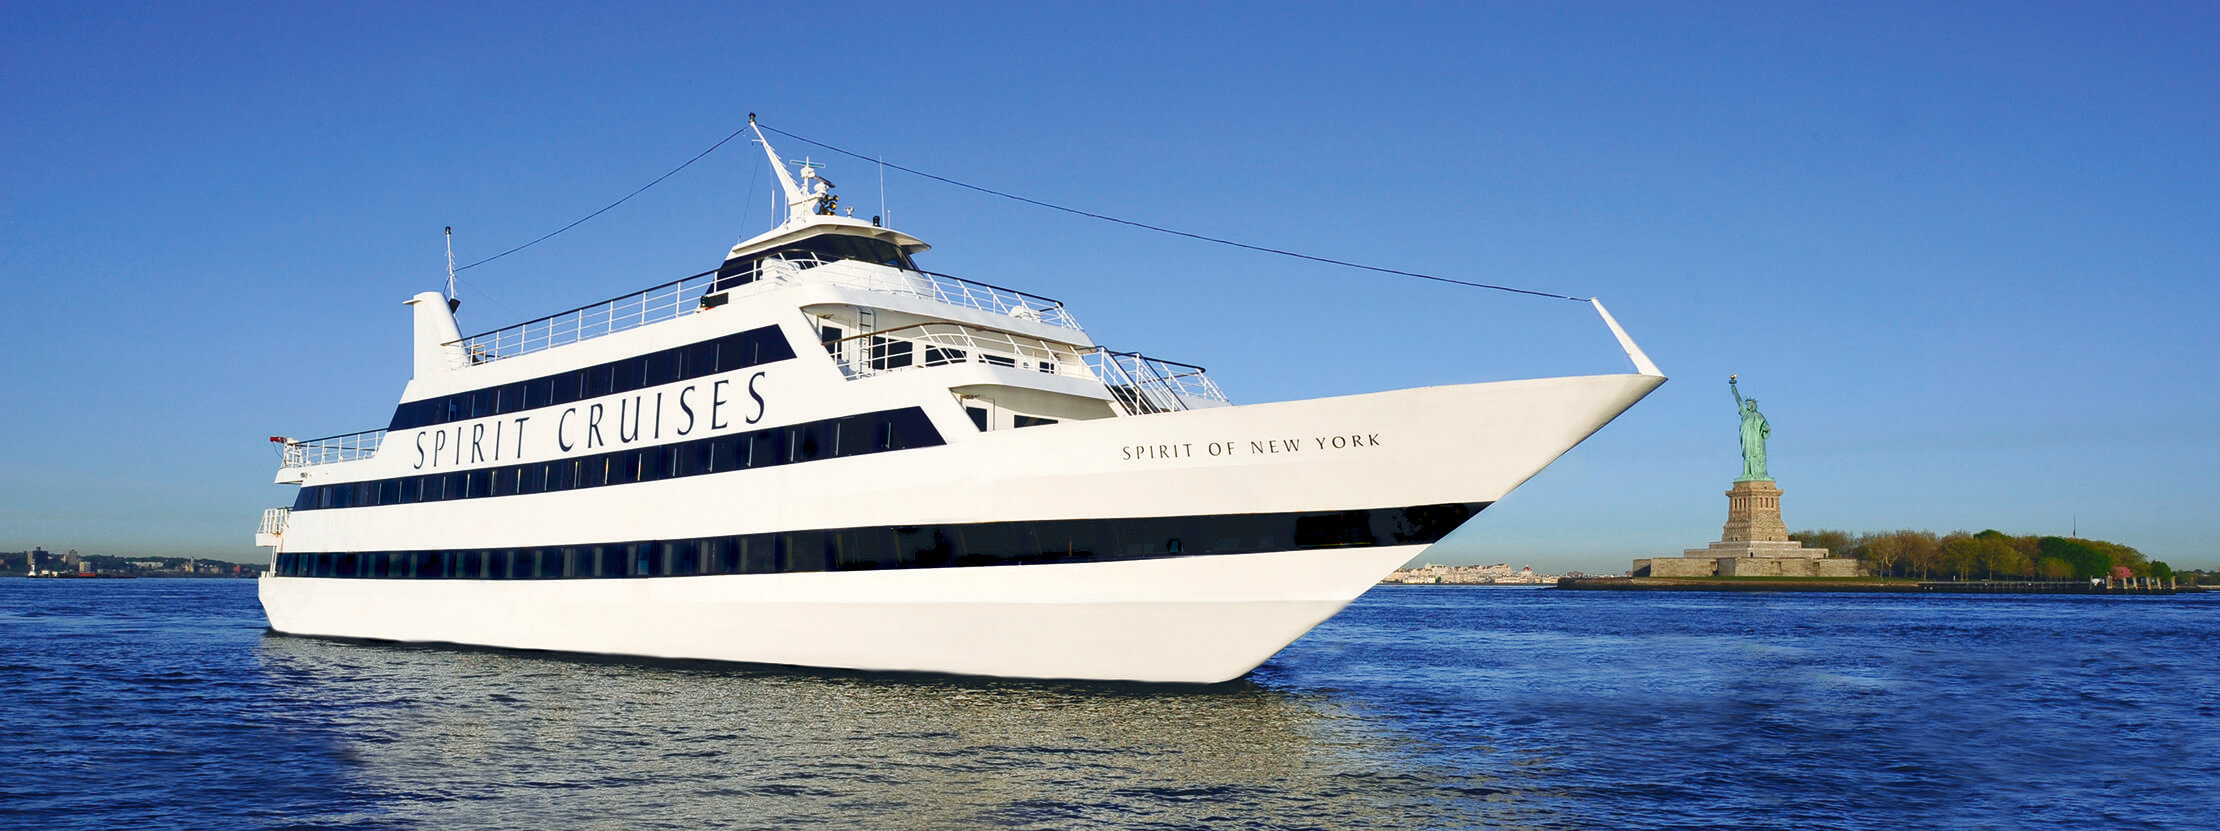 Valentine's Day Dinner Cruise - Feb 10th